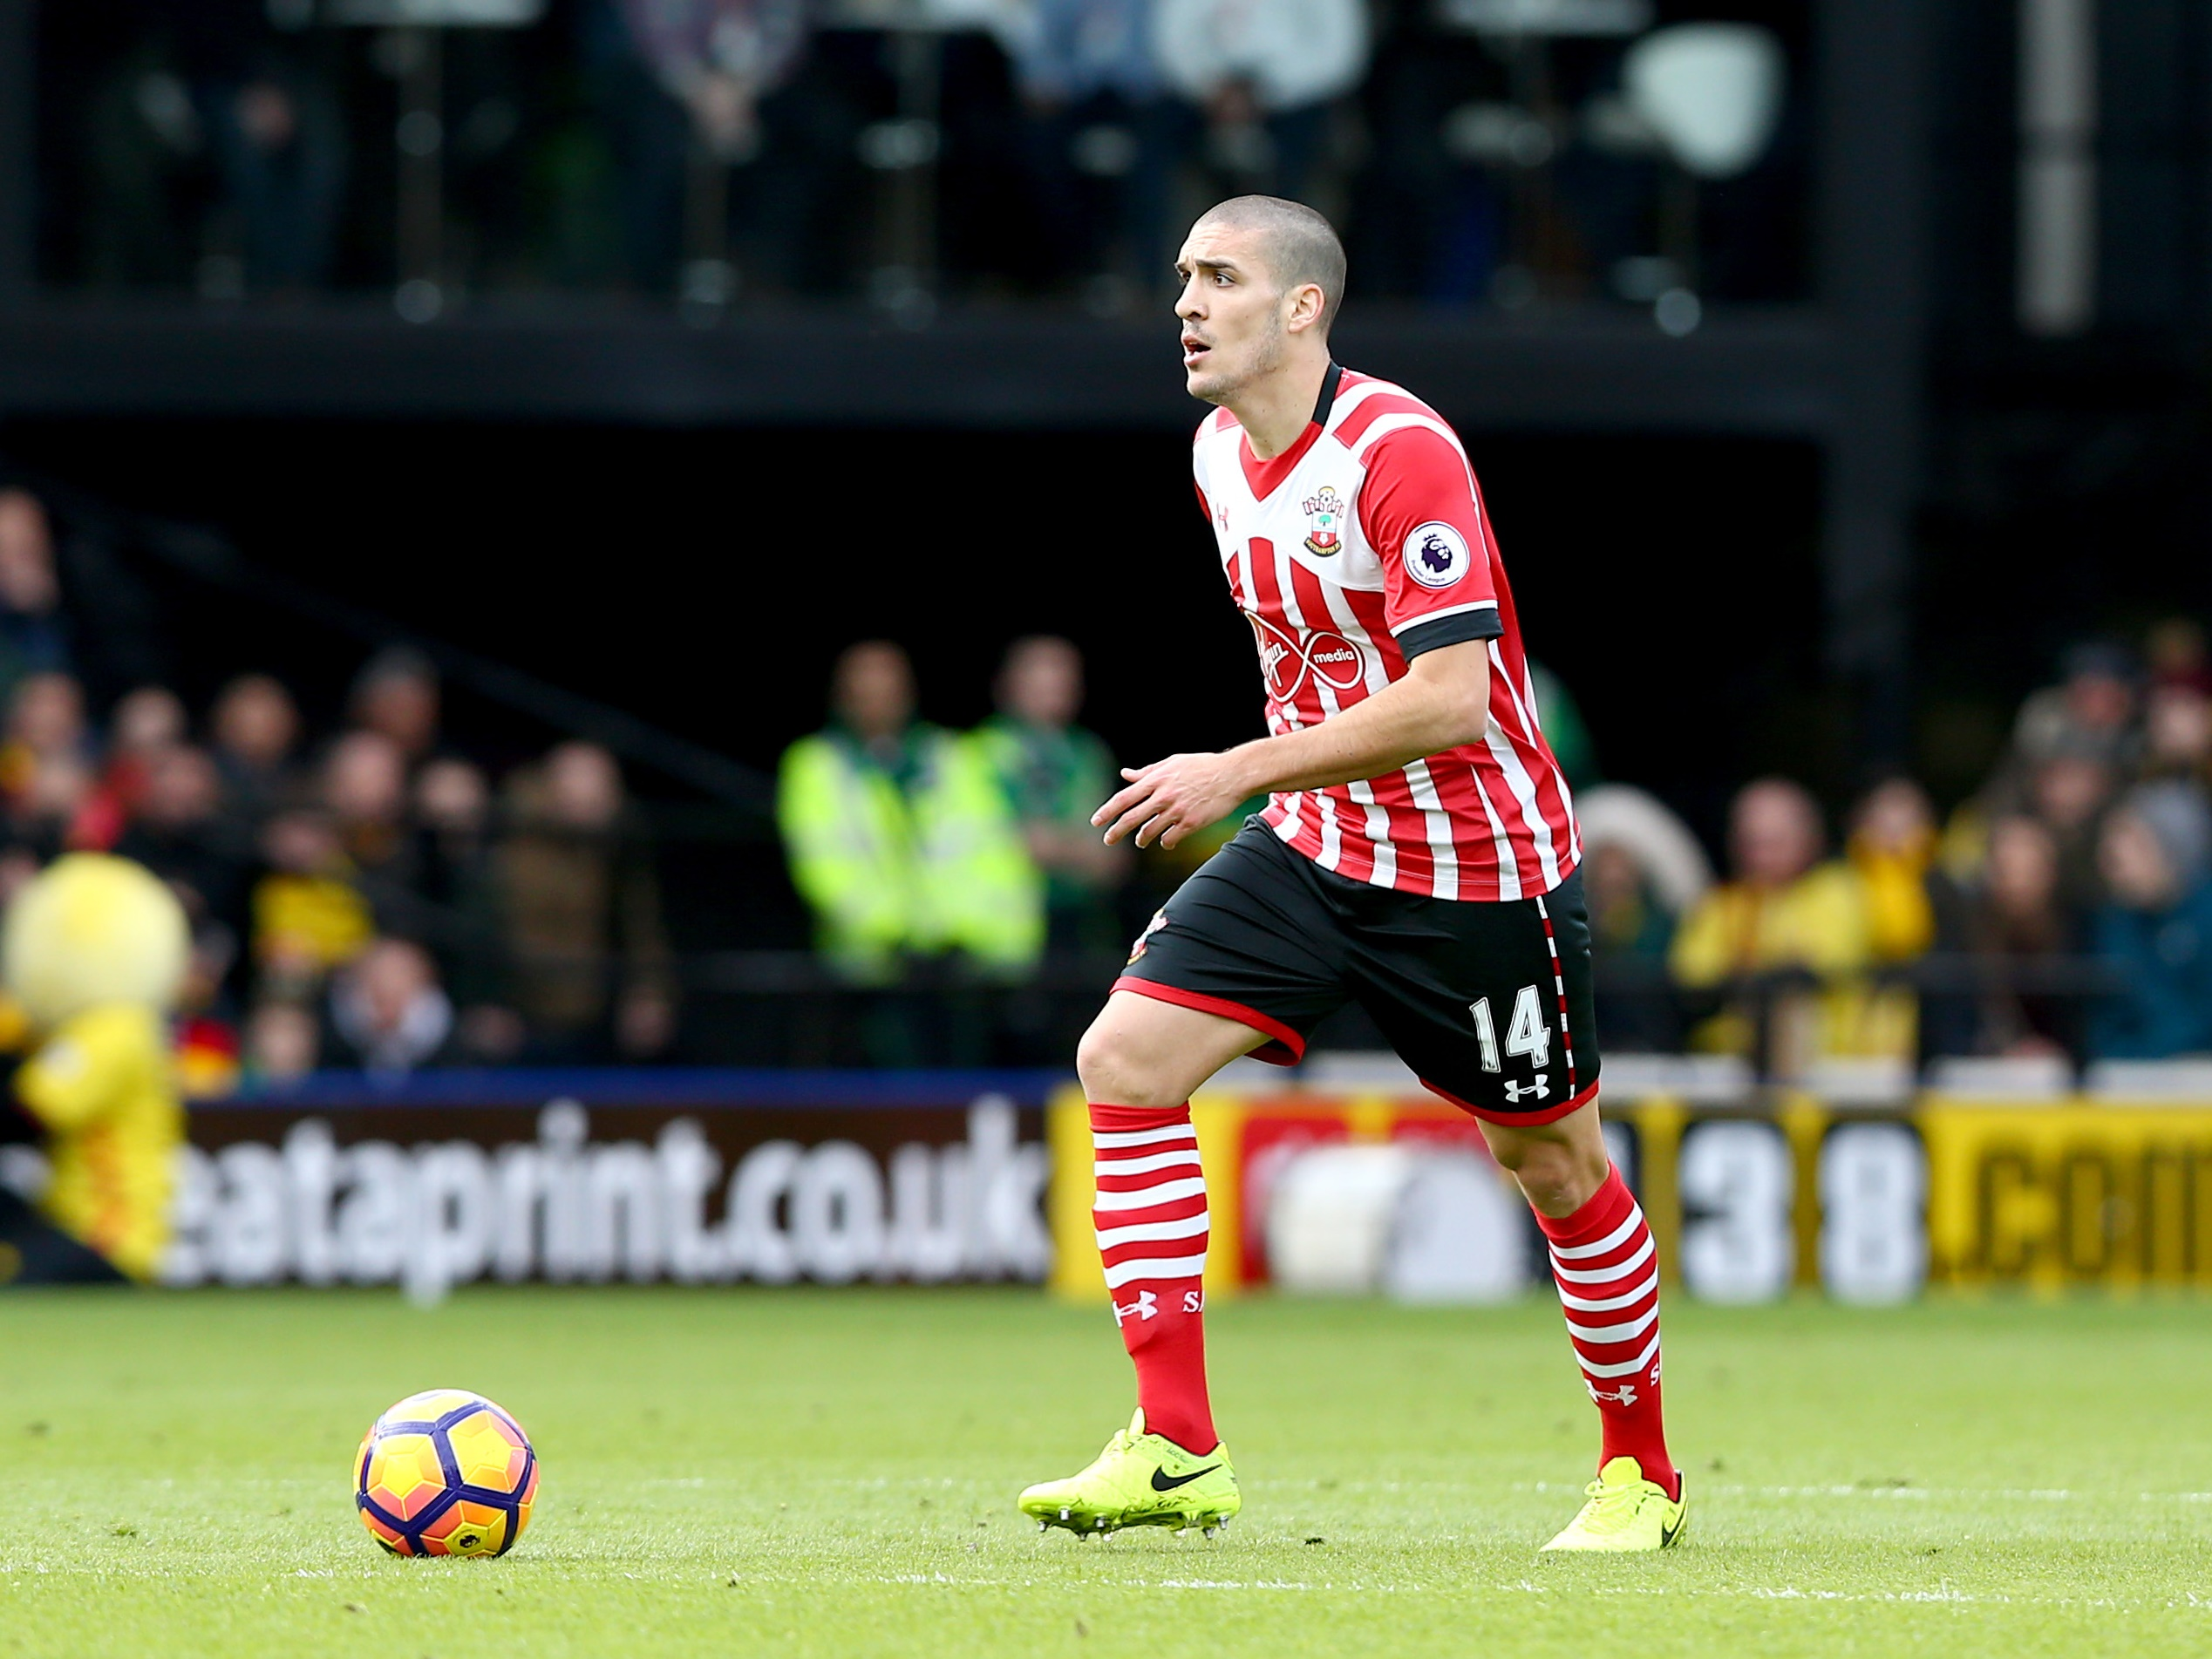 Southampton's Oriol Romeu in action against Watford on March 4, 2017